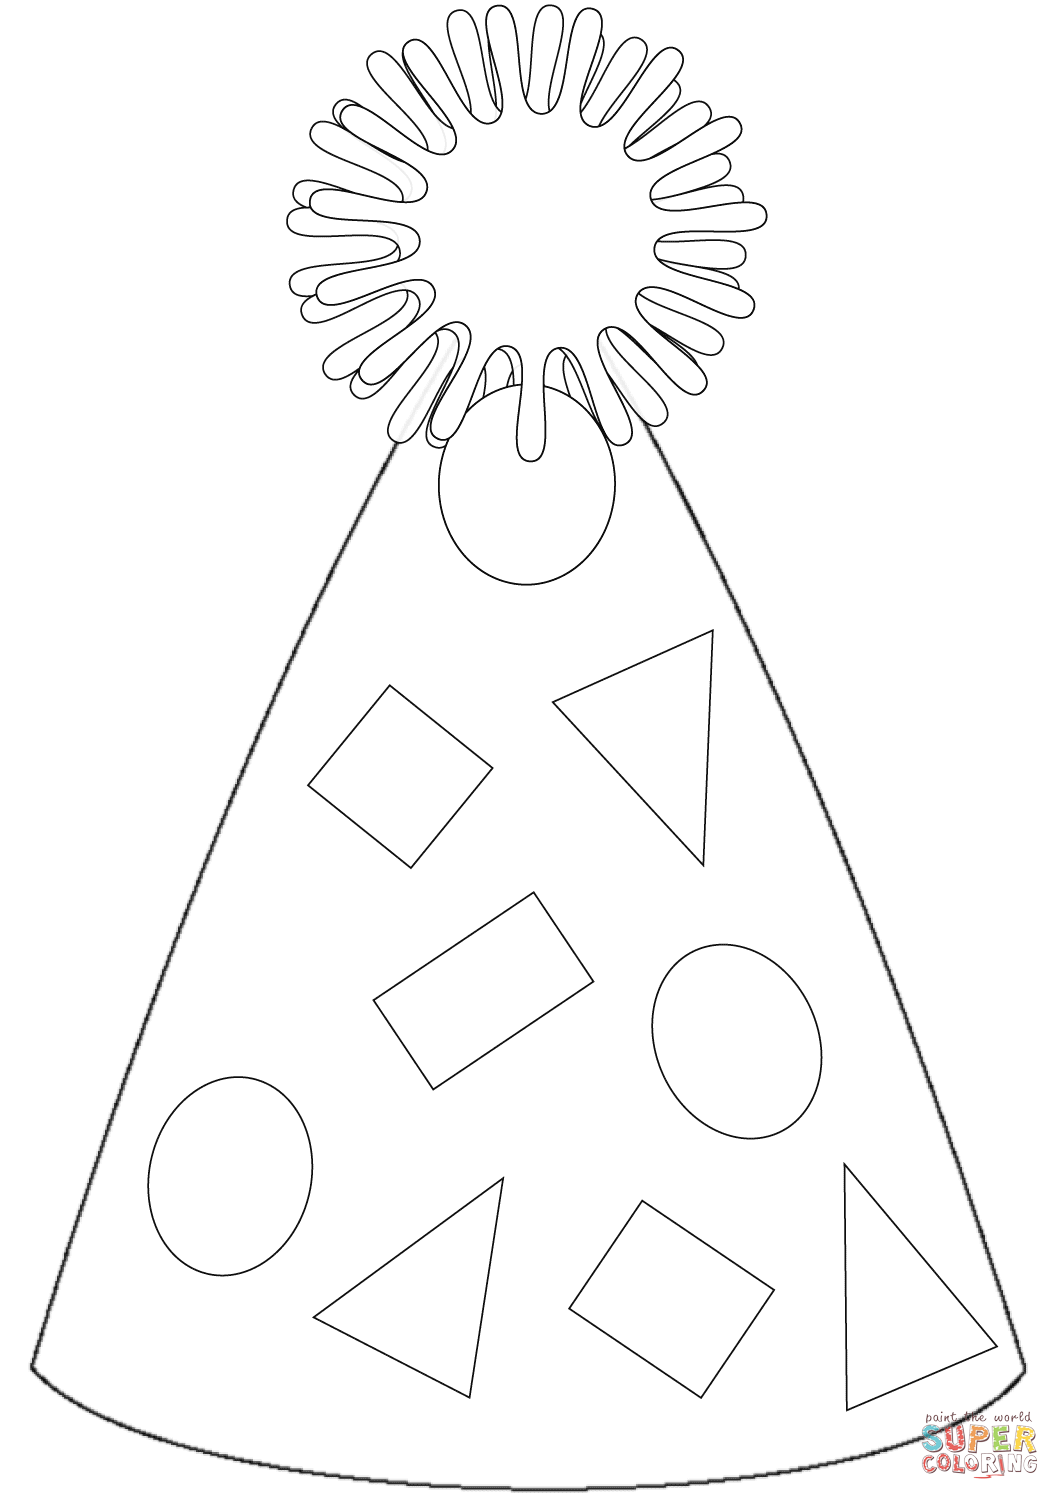 coloring pages of birthday hats birthday hat coloring pages coloring pages hats pages of coloring birthday